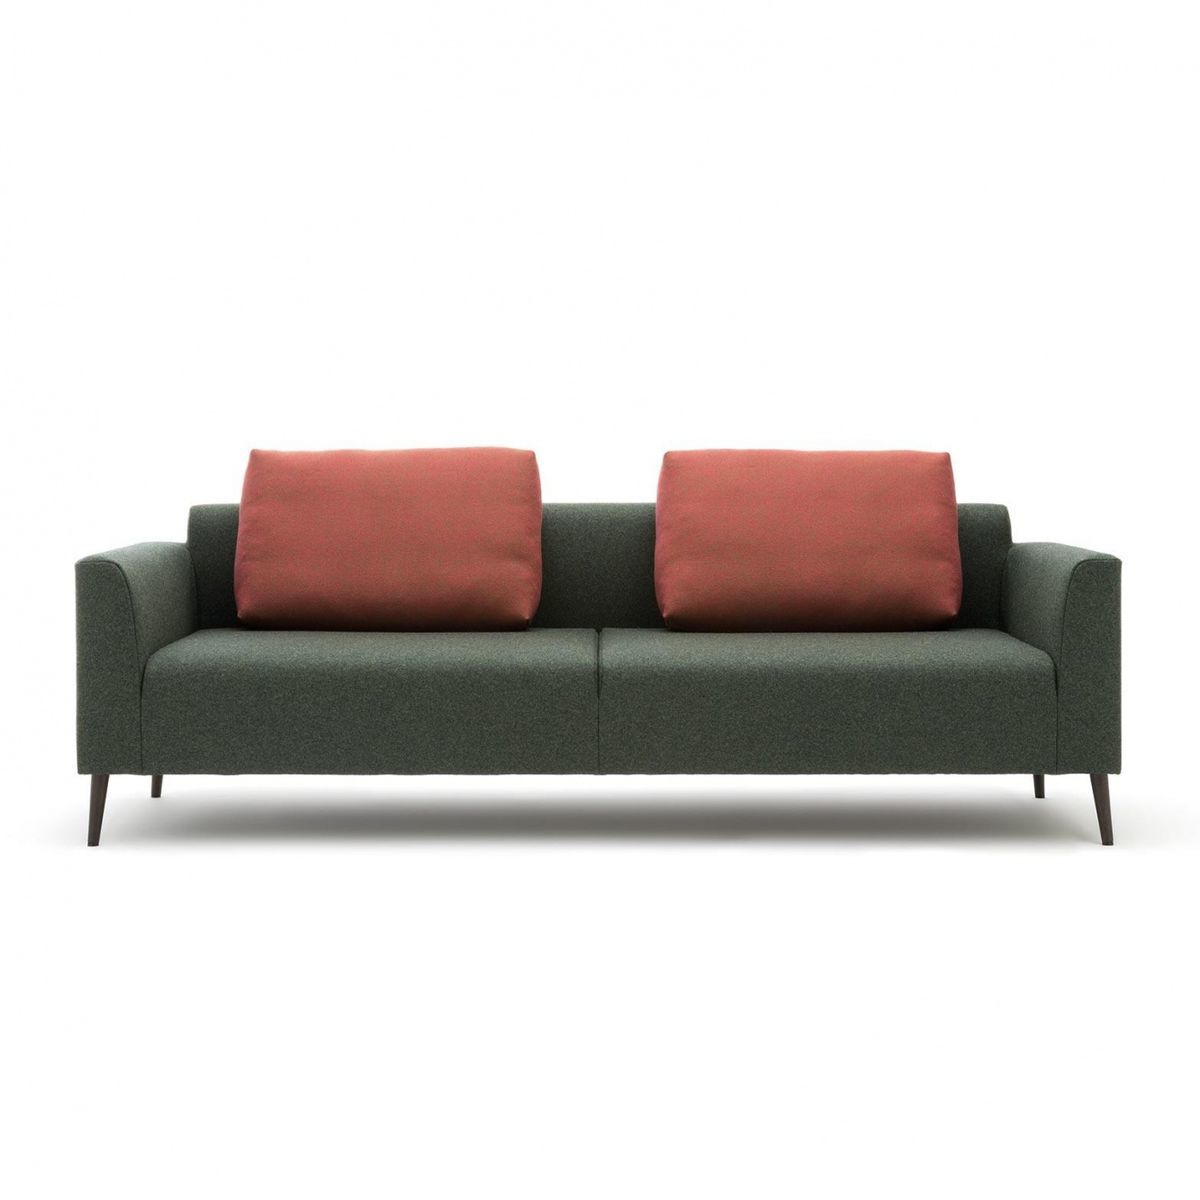 Rolf benz sofas freistil heimdesign innenarchitektur for Rolf benz freistil 175